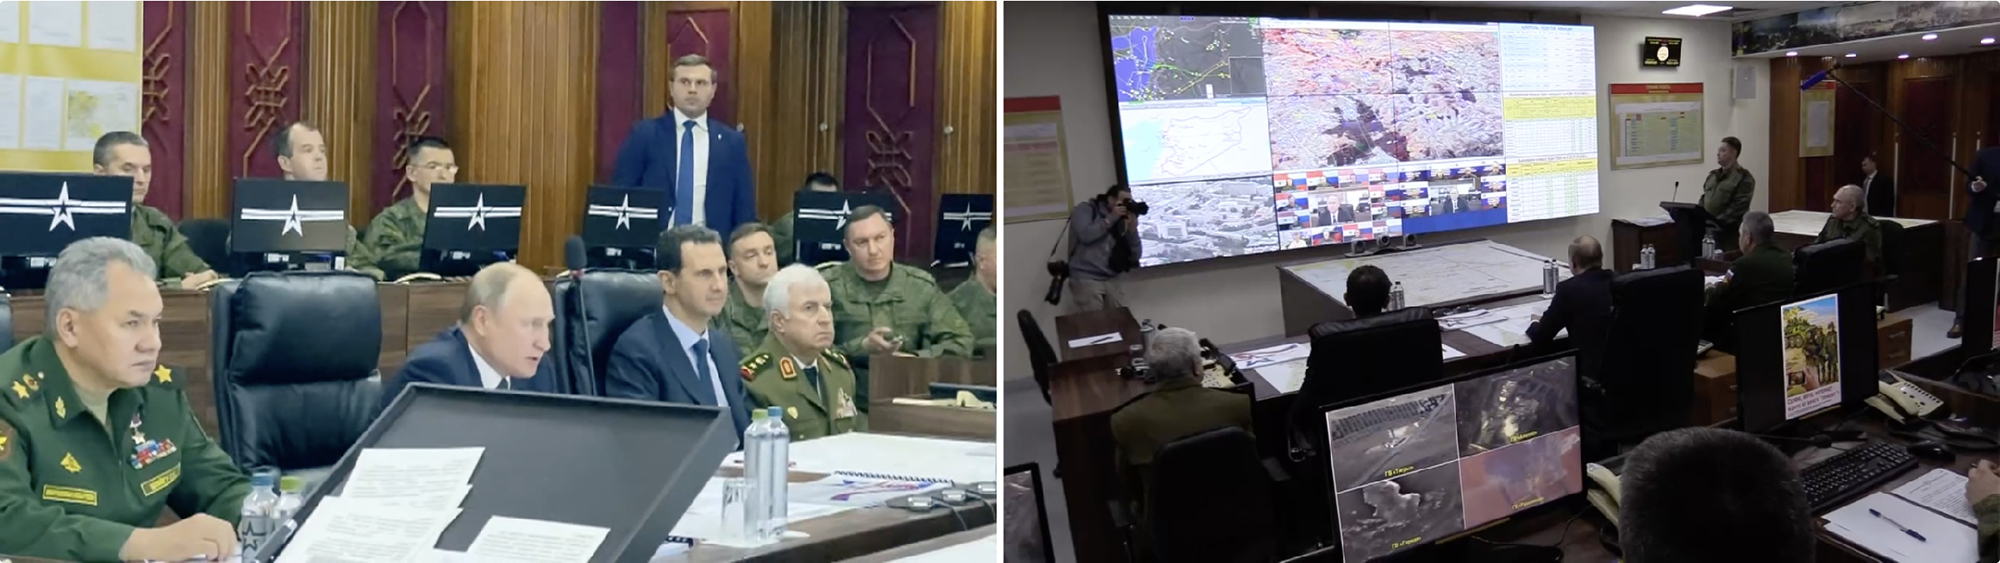 President Putin makes remarks at the Damascus command post for Russian forces during a January 7, 2020 trip to Syria.